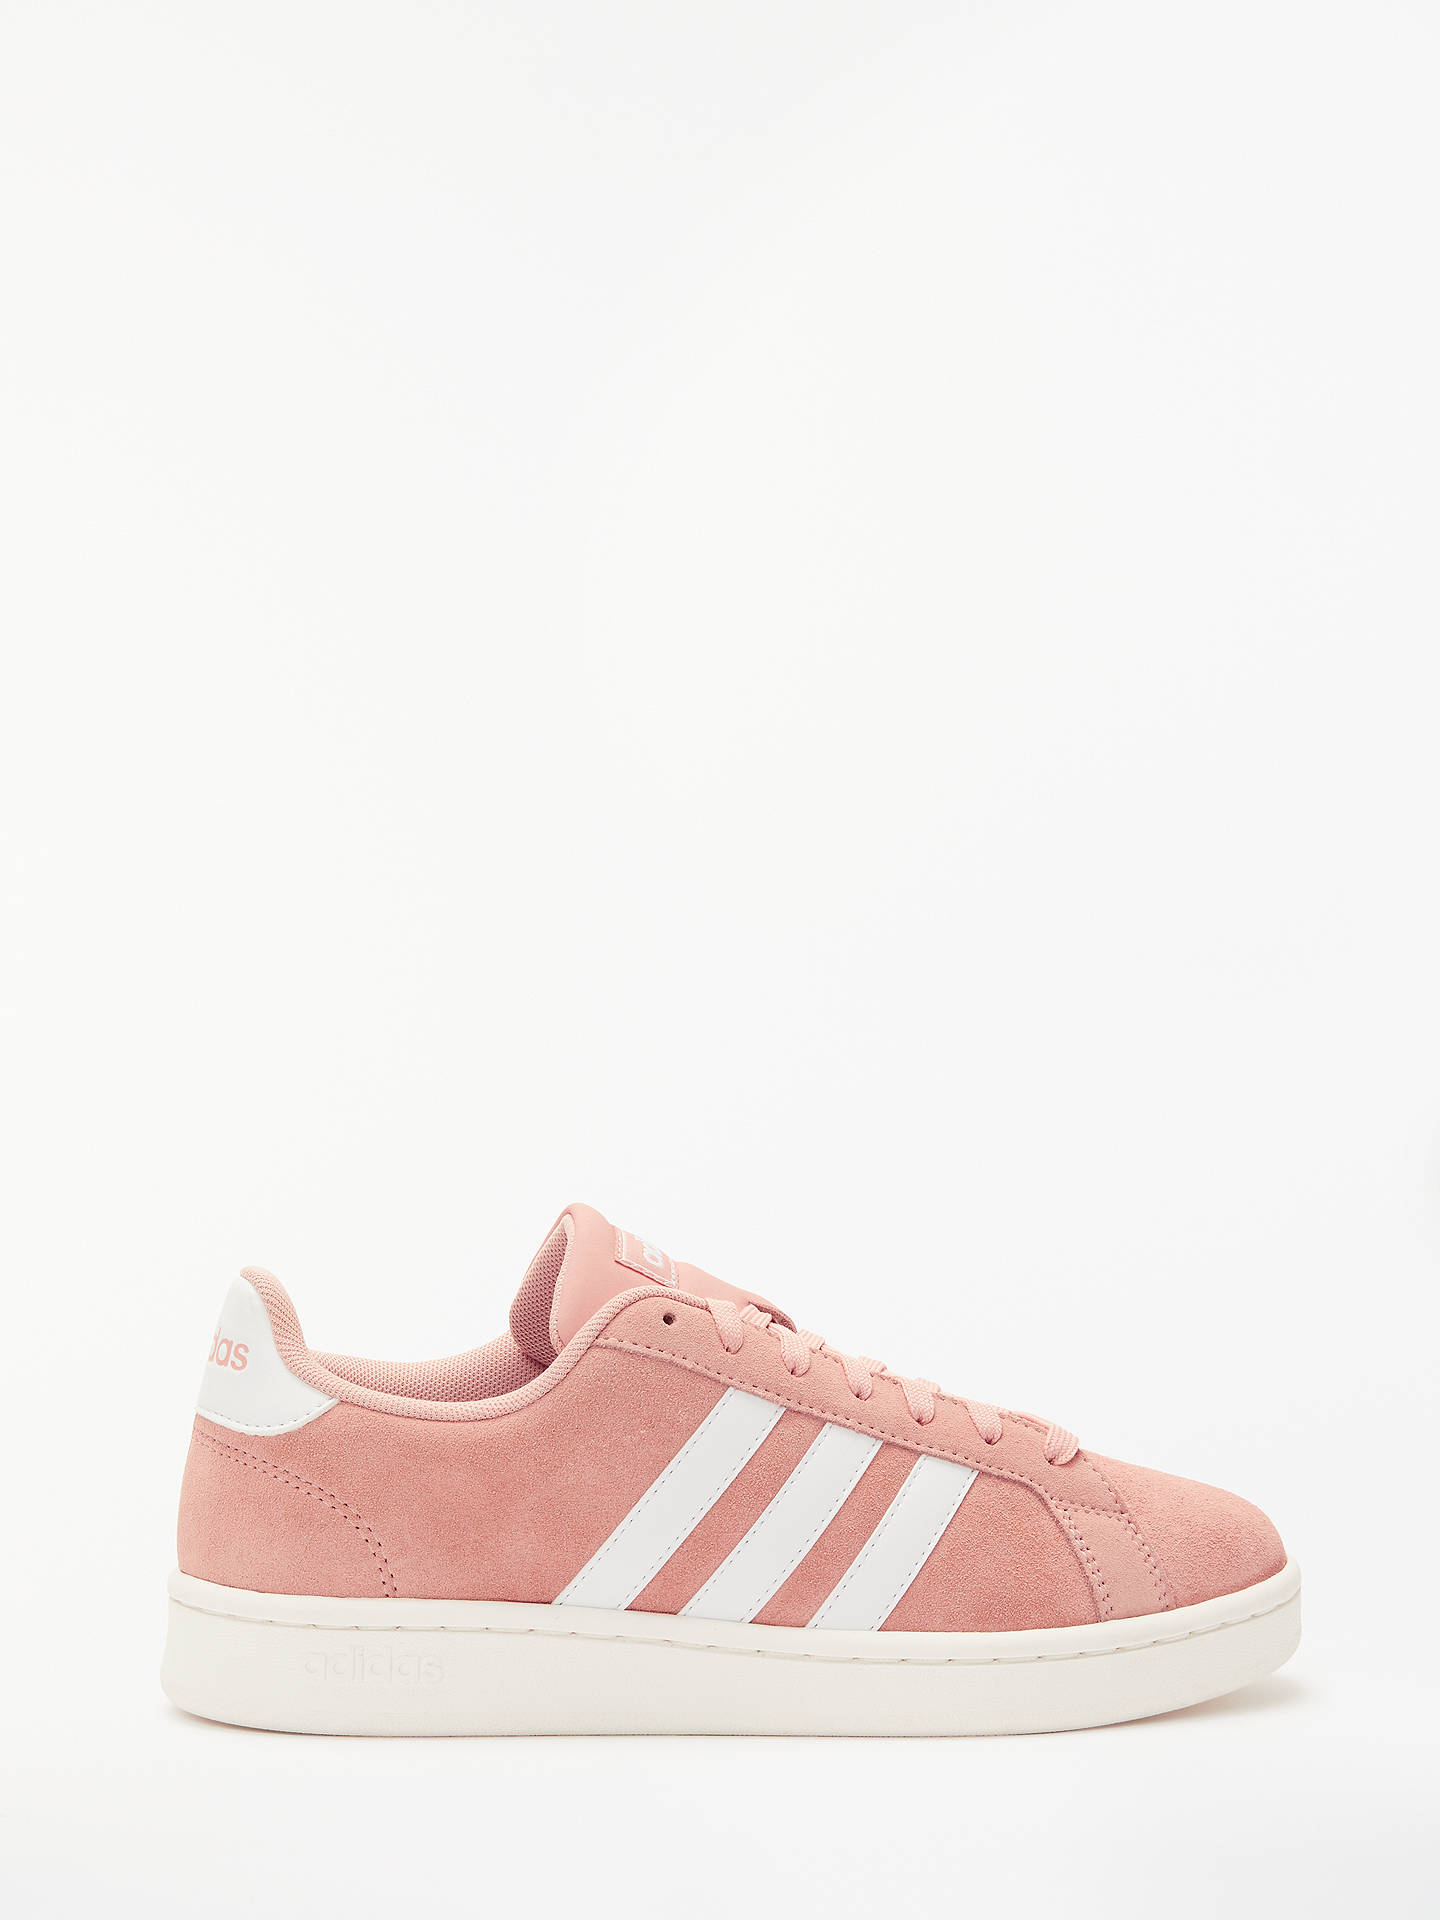 45d2f02917aa adidas Grand Court Women s Trainers at John Lewis   Partners